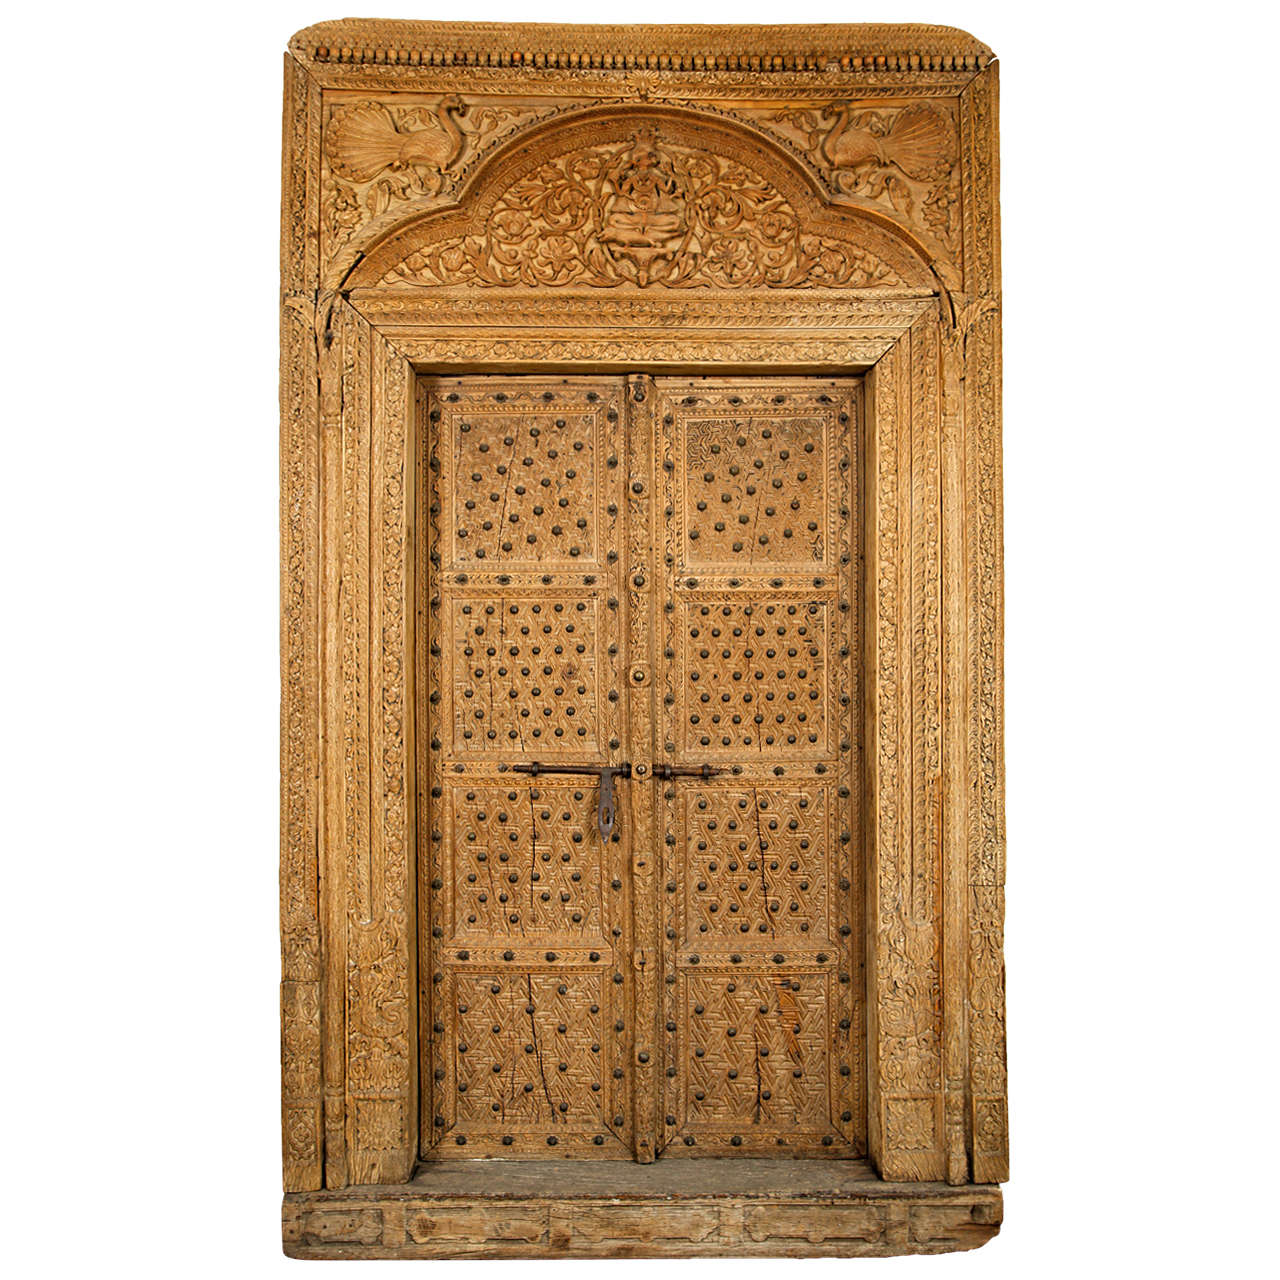 Wooden doors antique wooden doors for sale for Old wood doors for sale